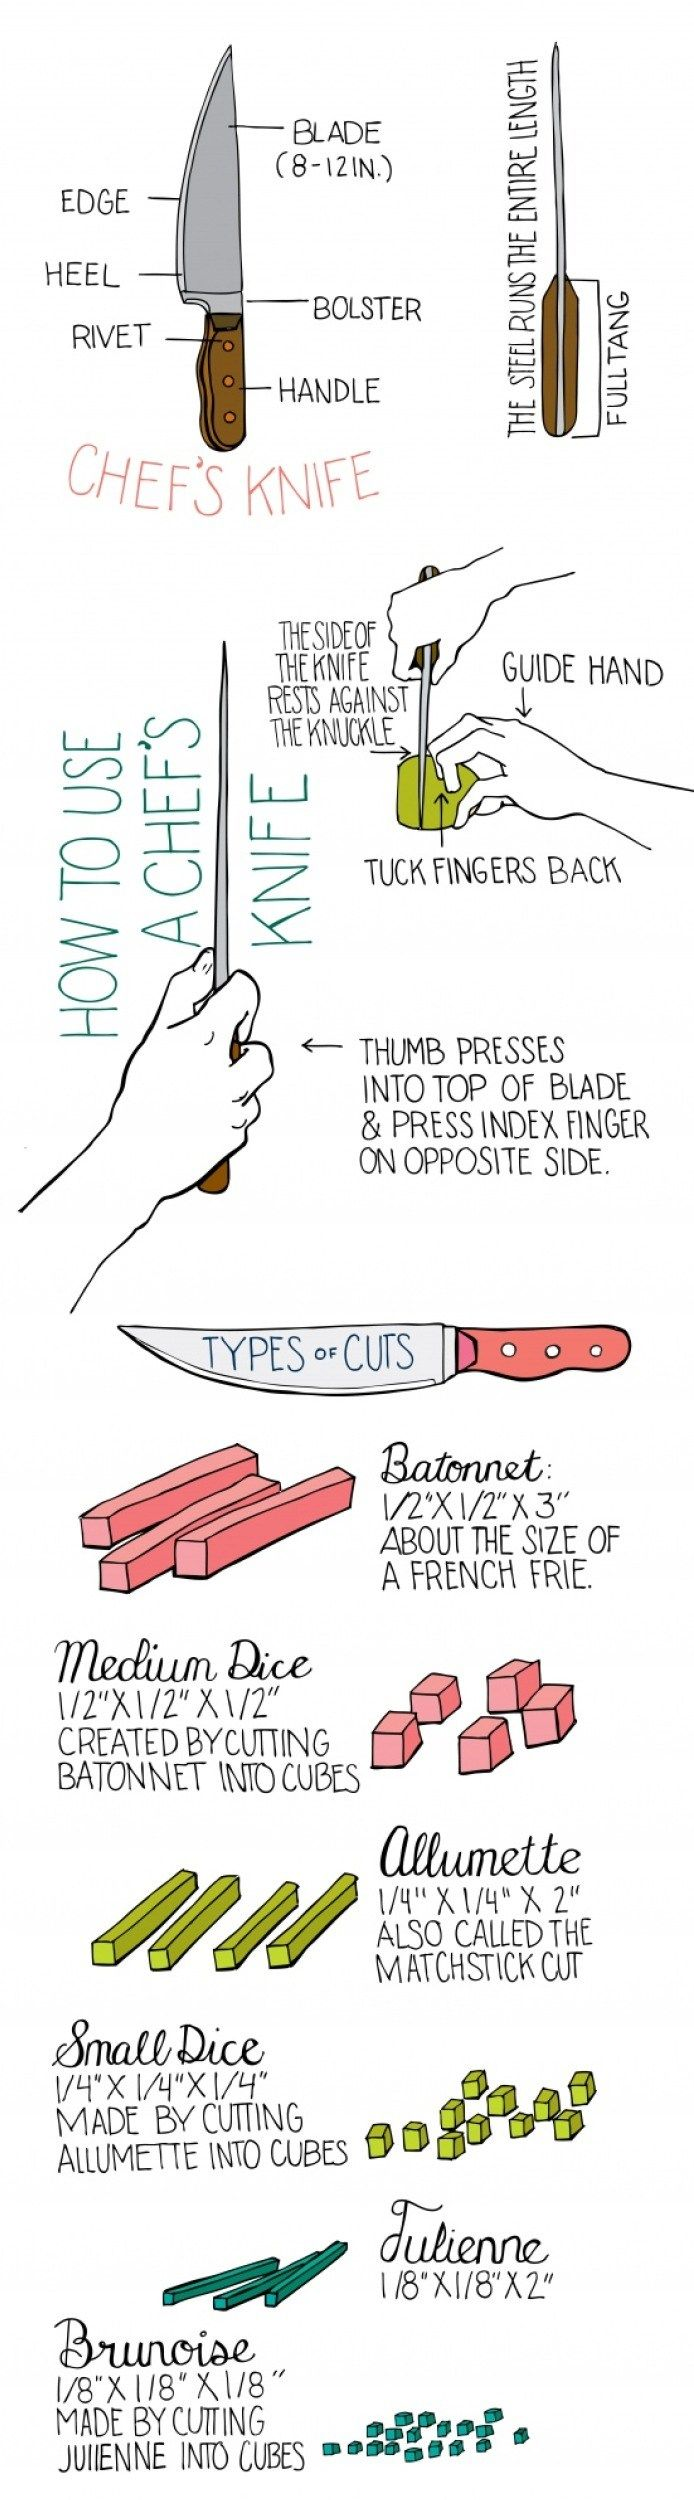 99 best kitchen knives images on pinterest kitchen knives a knife skills infograph